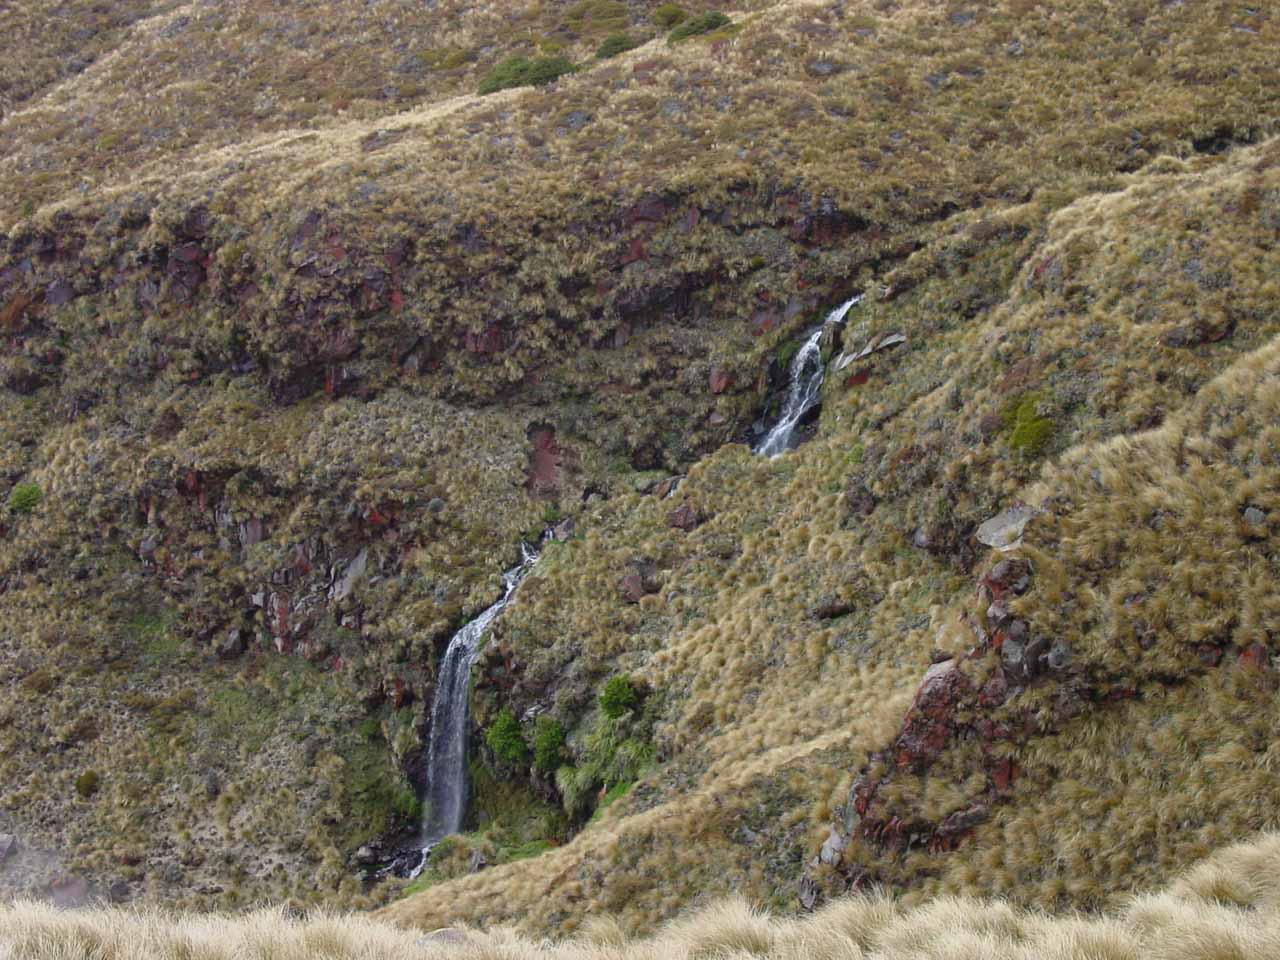 One of the waterfalls we encountered while doing the Tongariro Crossing